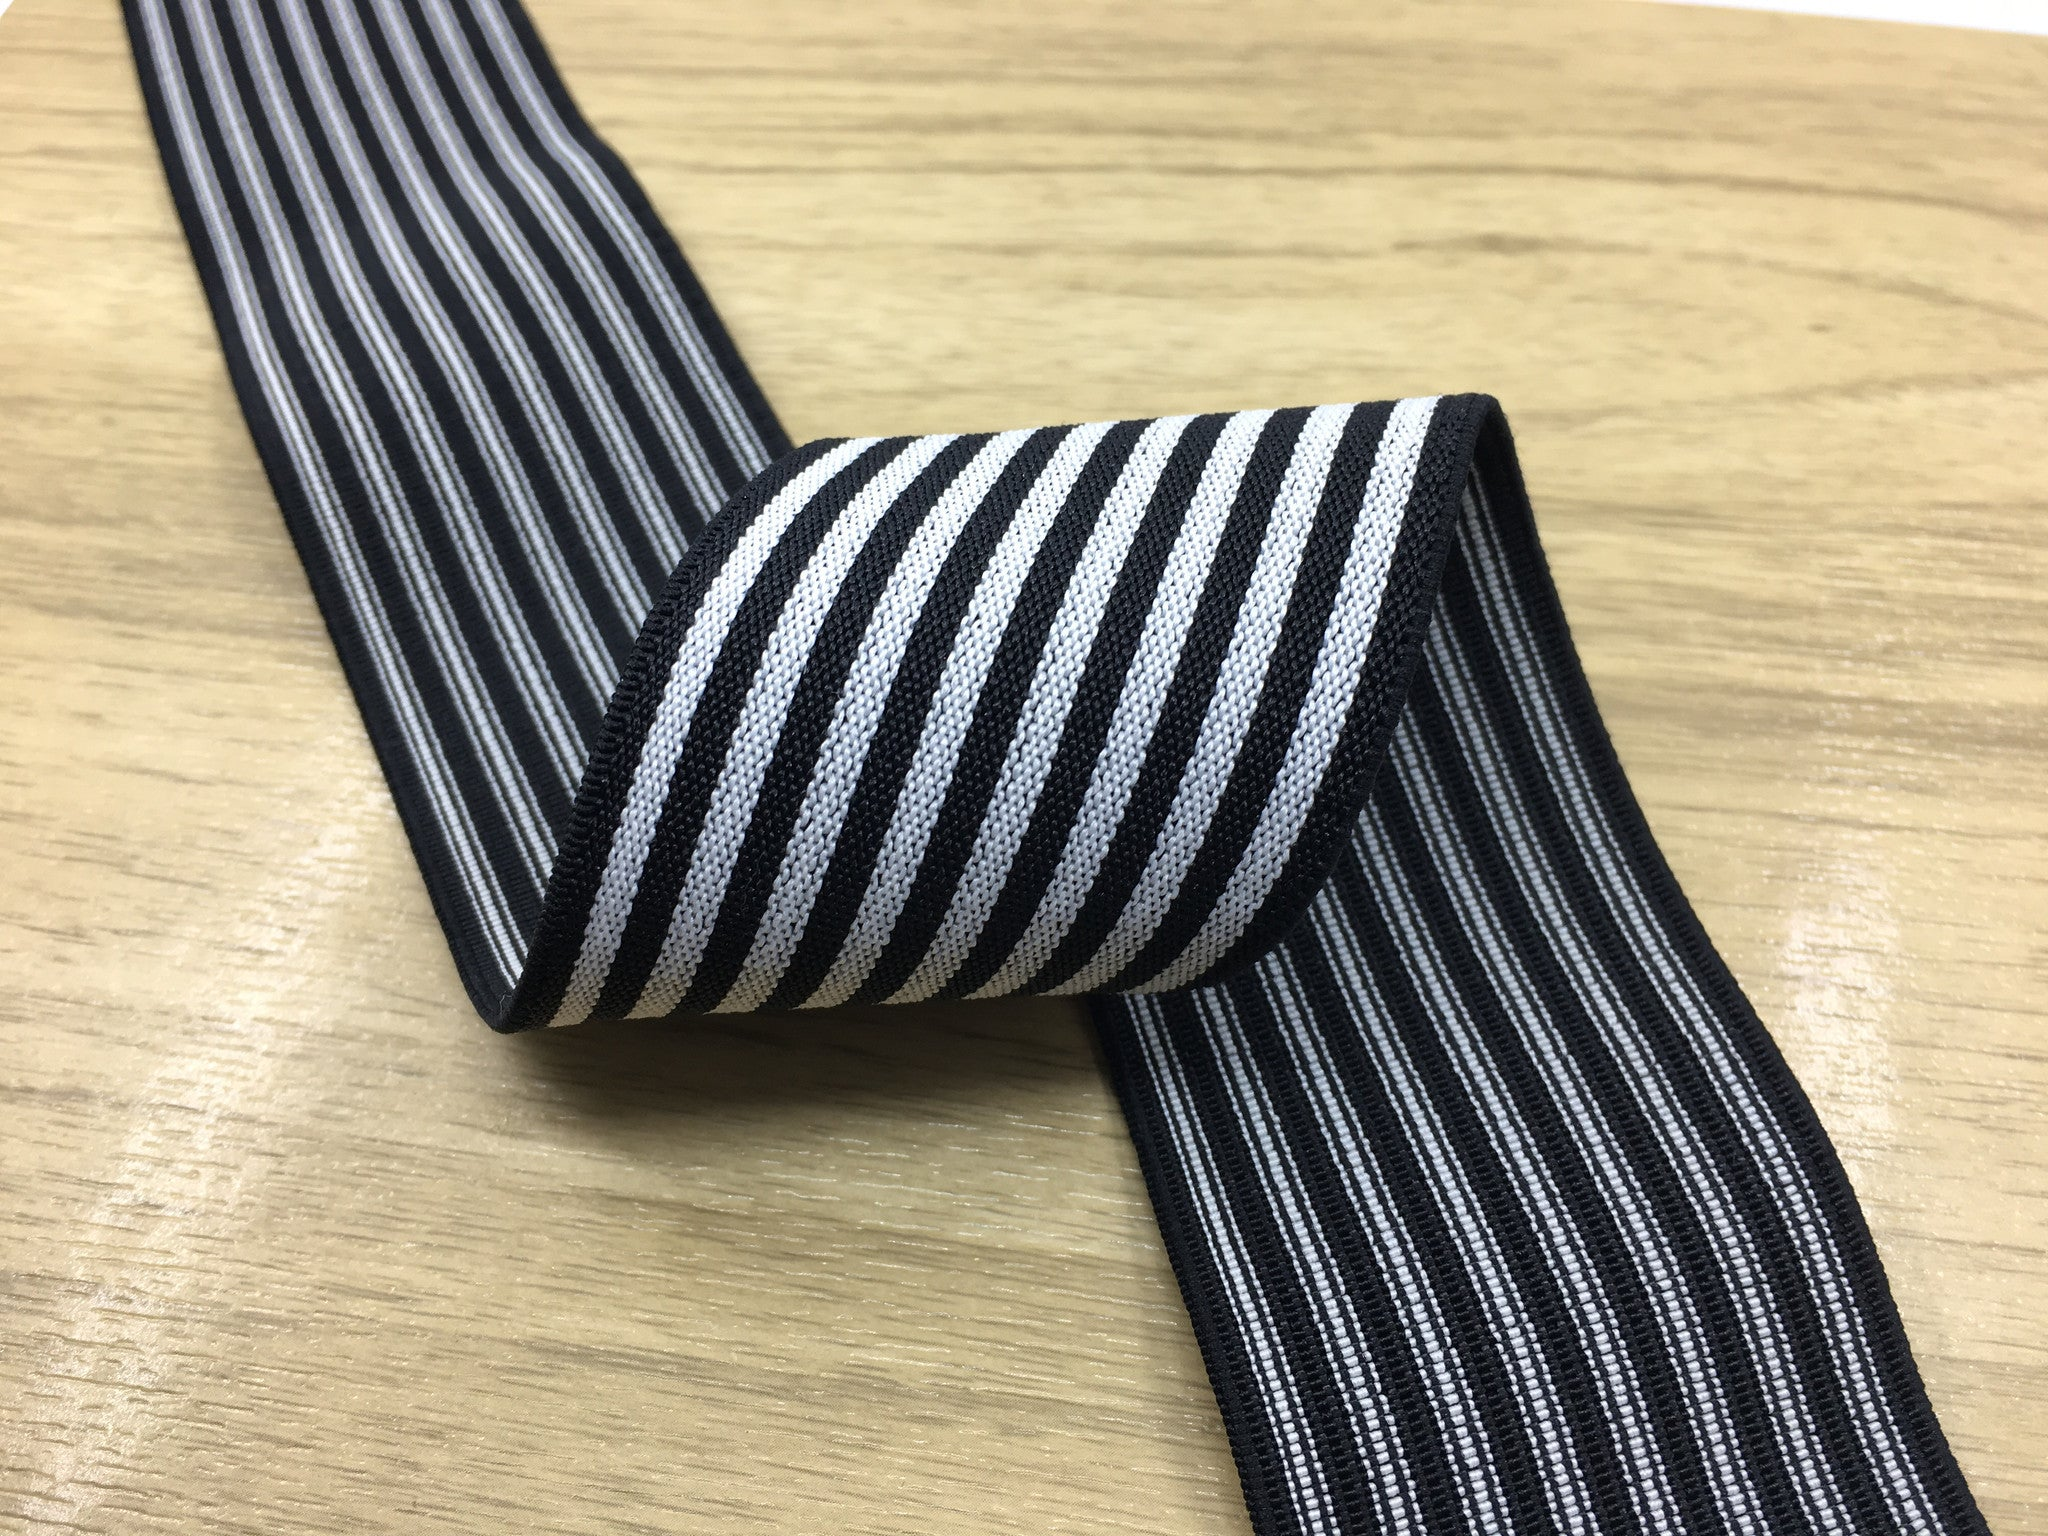 2 inch (50 mm ) Wide Colored Black and White Thin Striped Elastic Band, Waistband Elastic, Sewing Elastic-1 Yard - strapcrafts